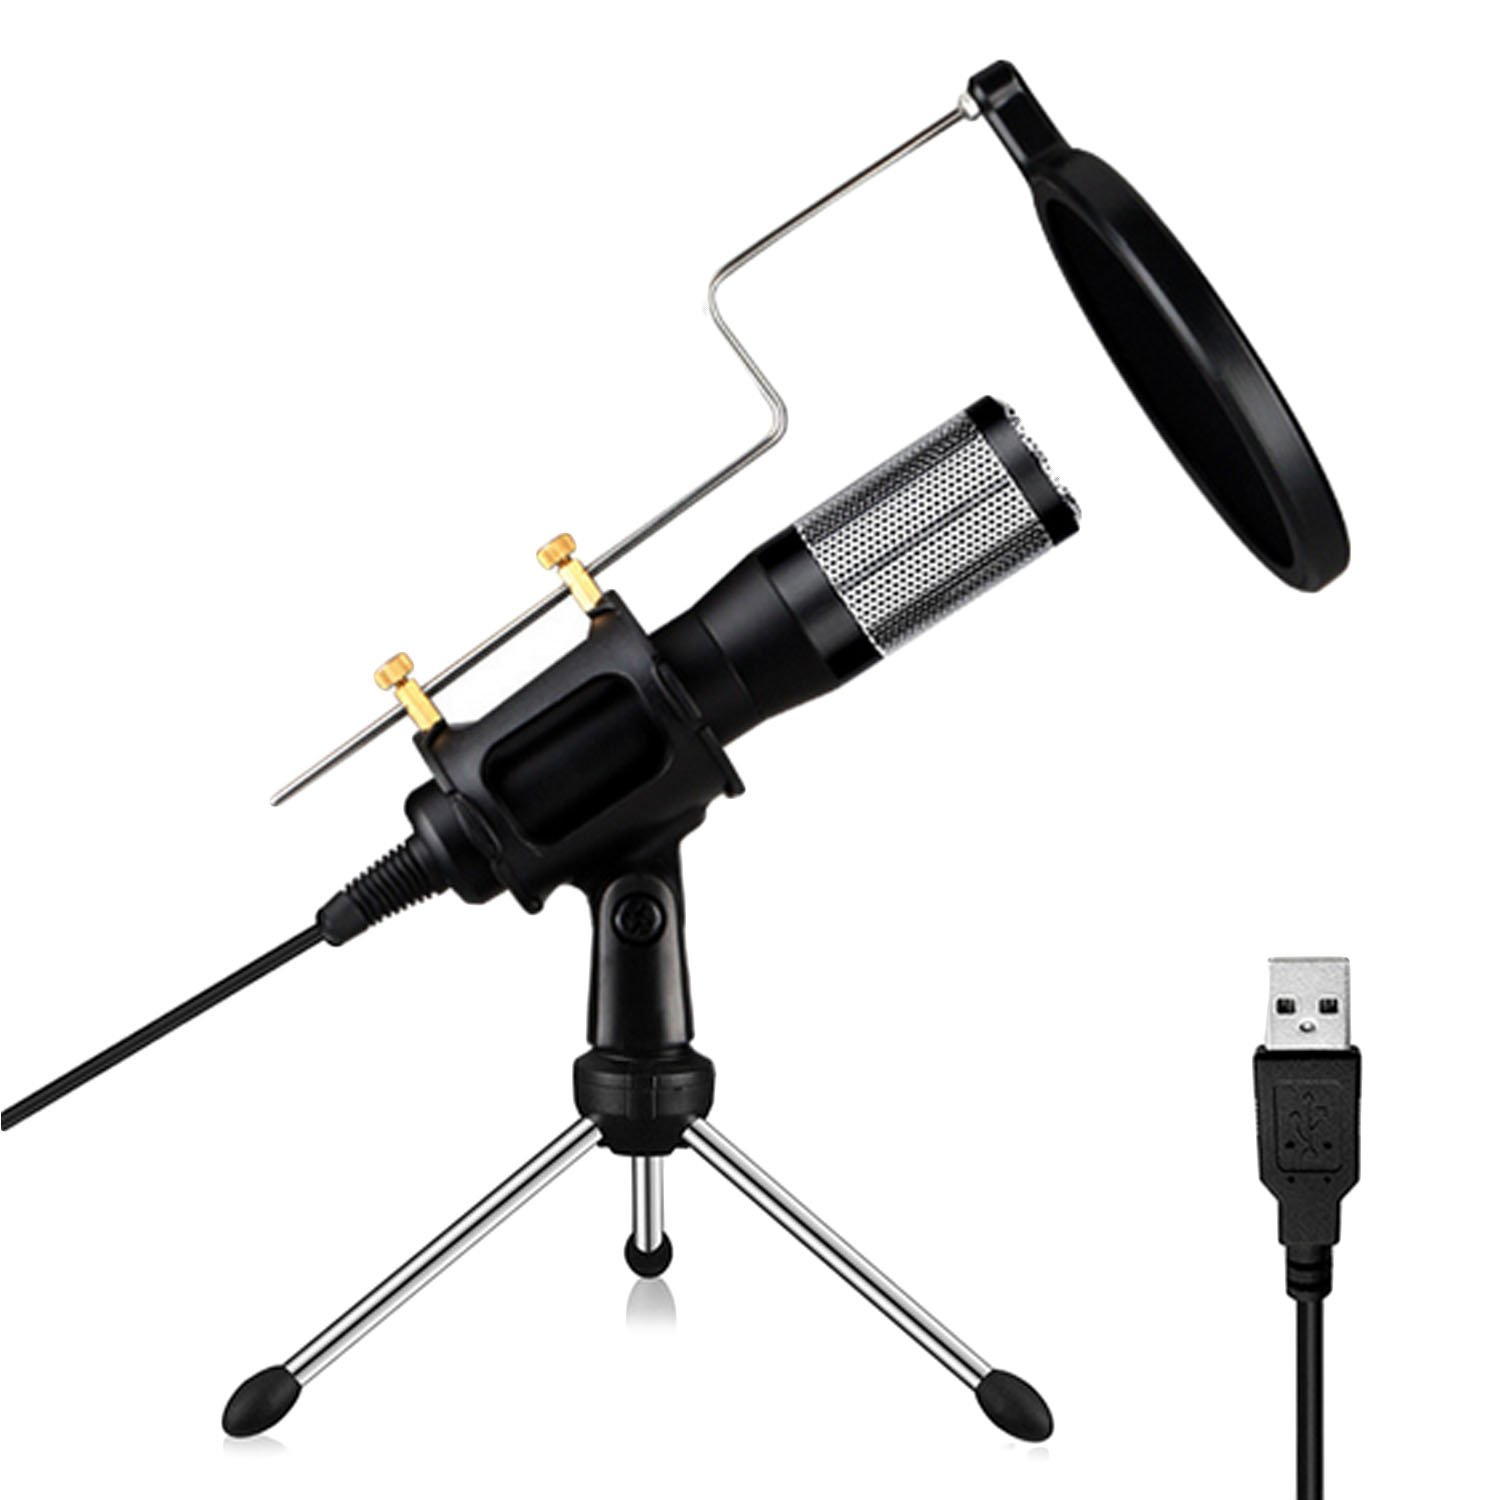 Home Studio Portable Mini USB Condenser Microphone with Pop Filter and Stand Built-in Sound Card for iPhone Computer laptop PC